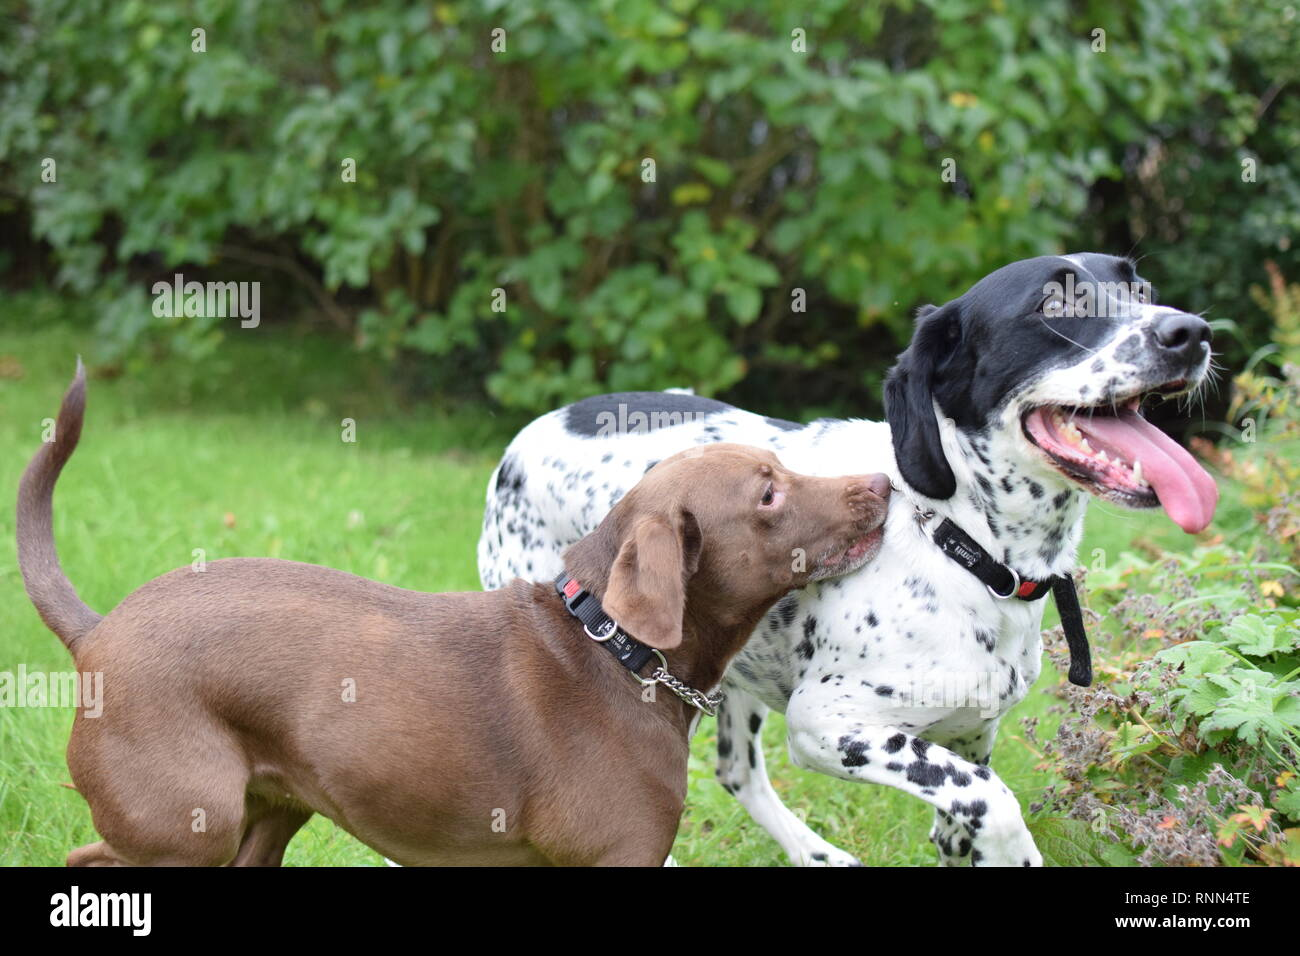 Two Spaniel crosses running and playing in a family garden. - Stock Image